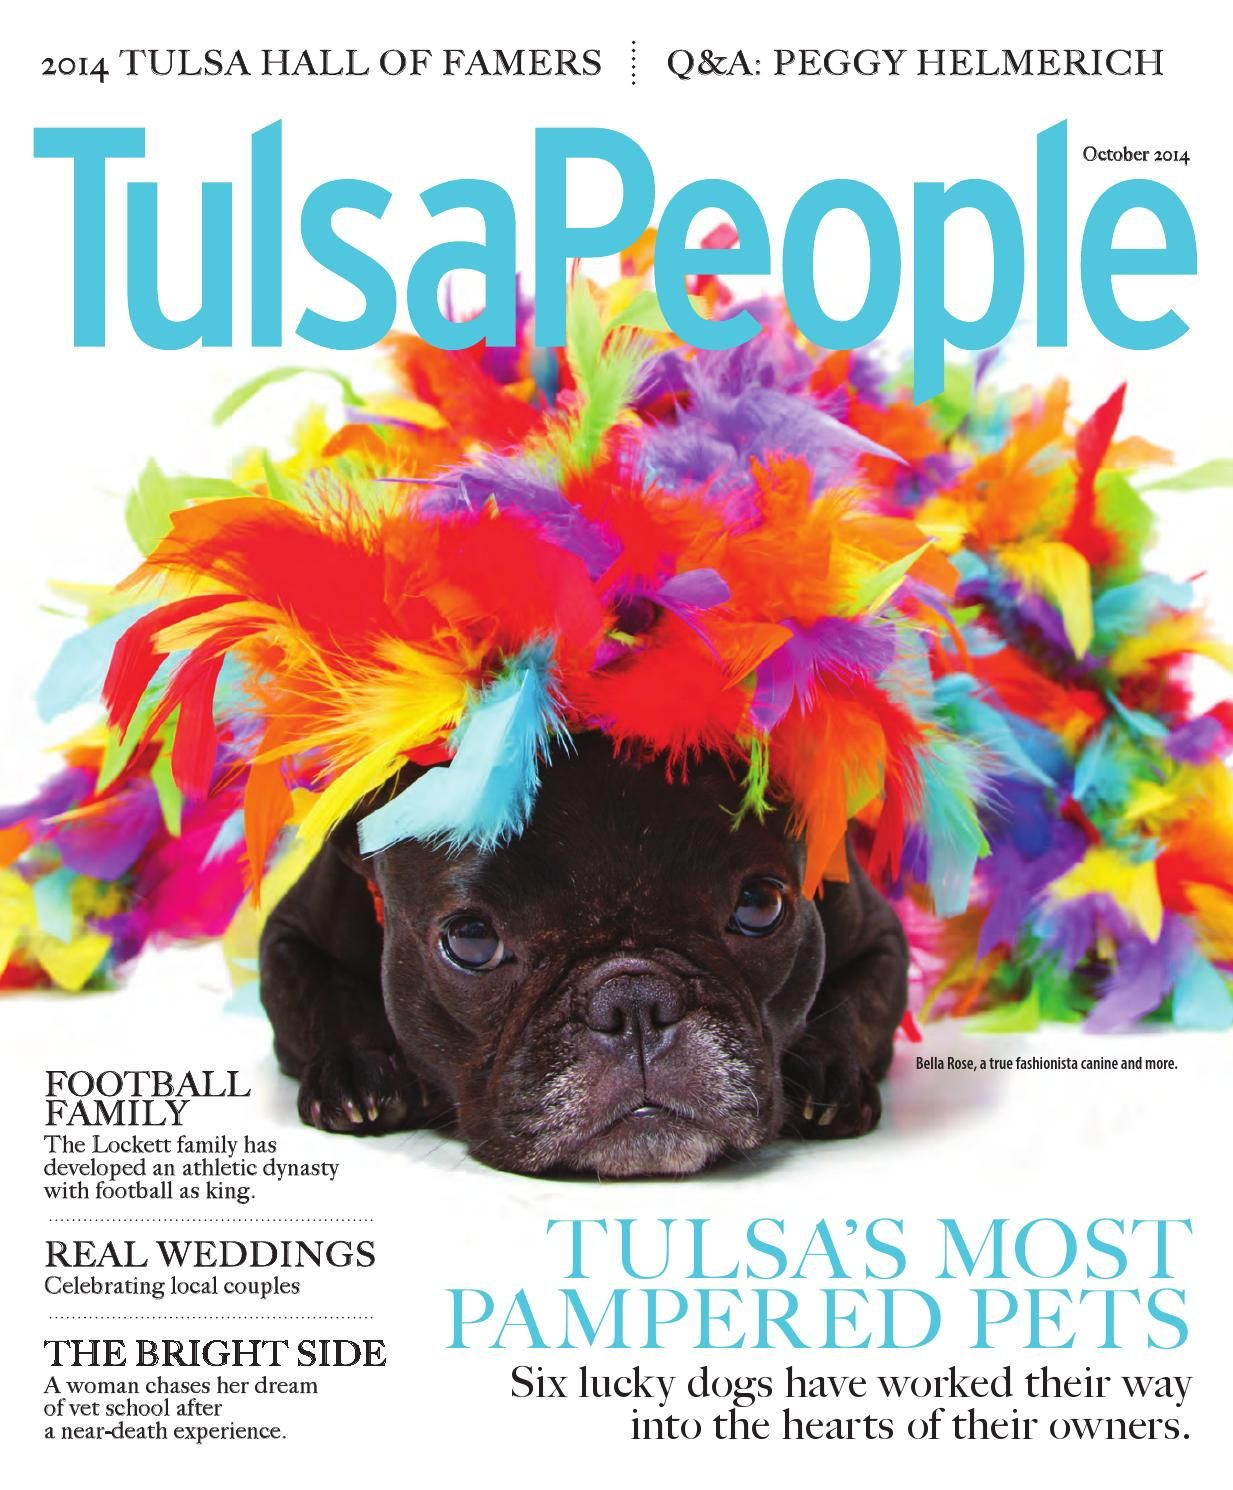 """""""Tulsa's most pampered pets"""" In March 2014 at the Oklahoma Alliance for Animals' Fur Ball, Bella wore a ball gown by Orostani Couture. When she was photographed with Carrie Underwood, the country music star joked that she had a dress just like Bella's. Price tag for the ball gown (Bella's, not Carrie's): around $250. Her toenails were painted pink and green to match the dress. Like you didn't know that."""